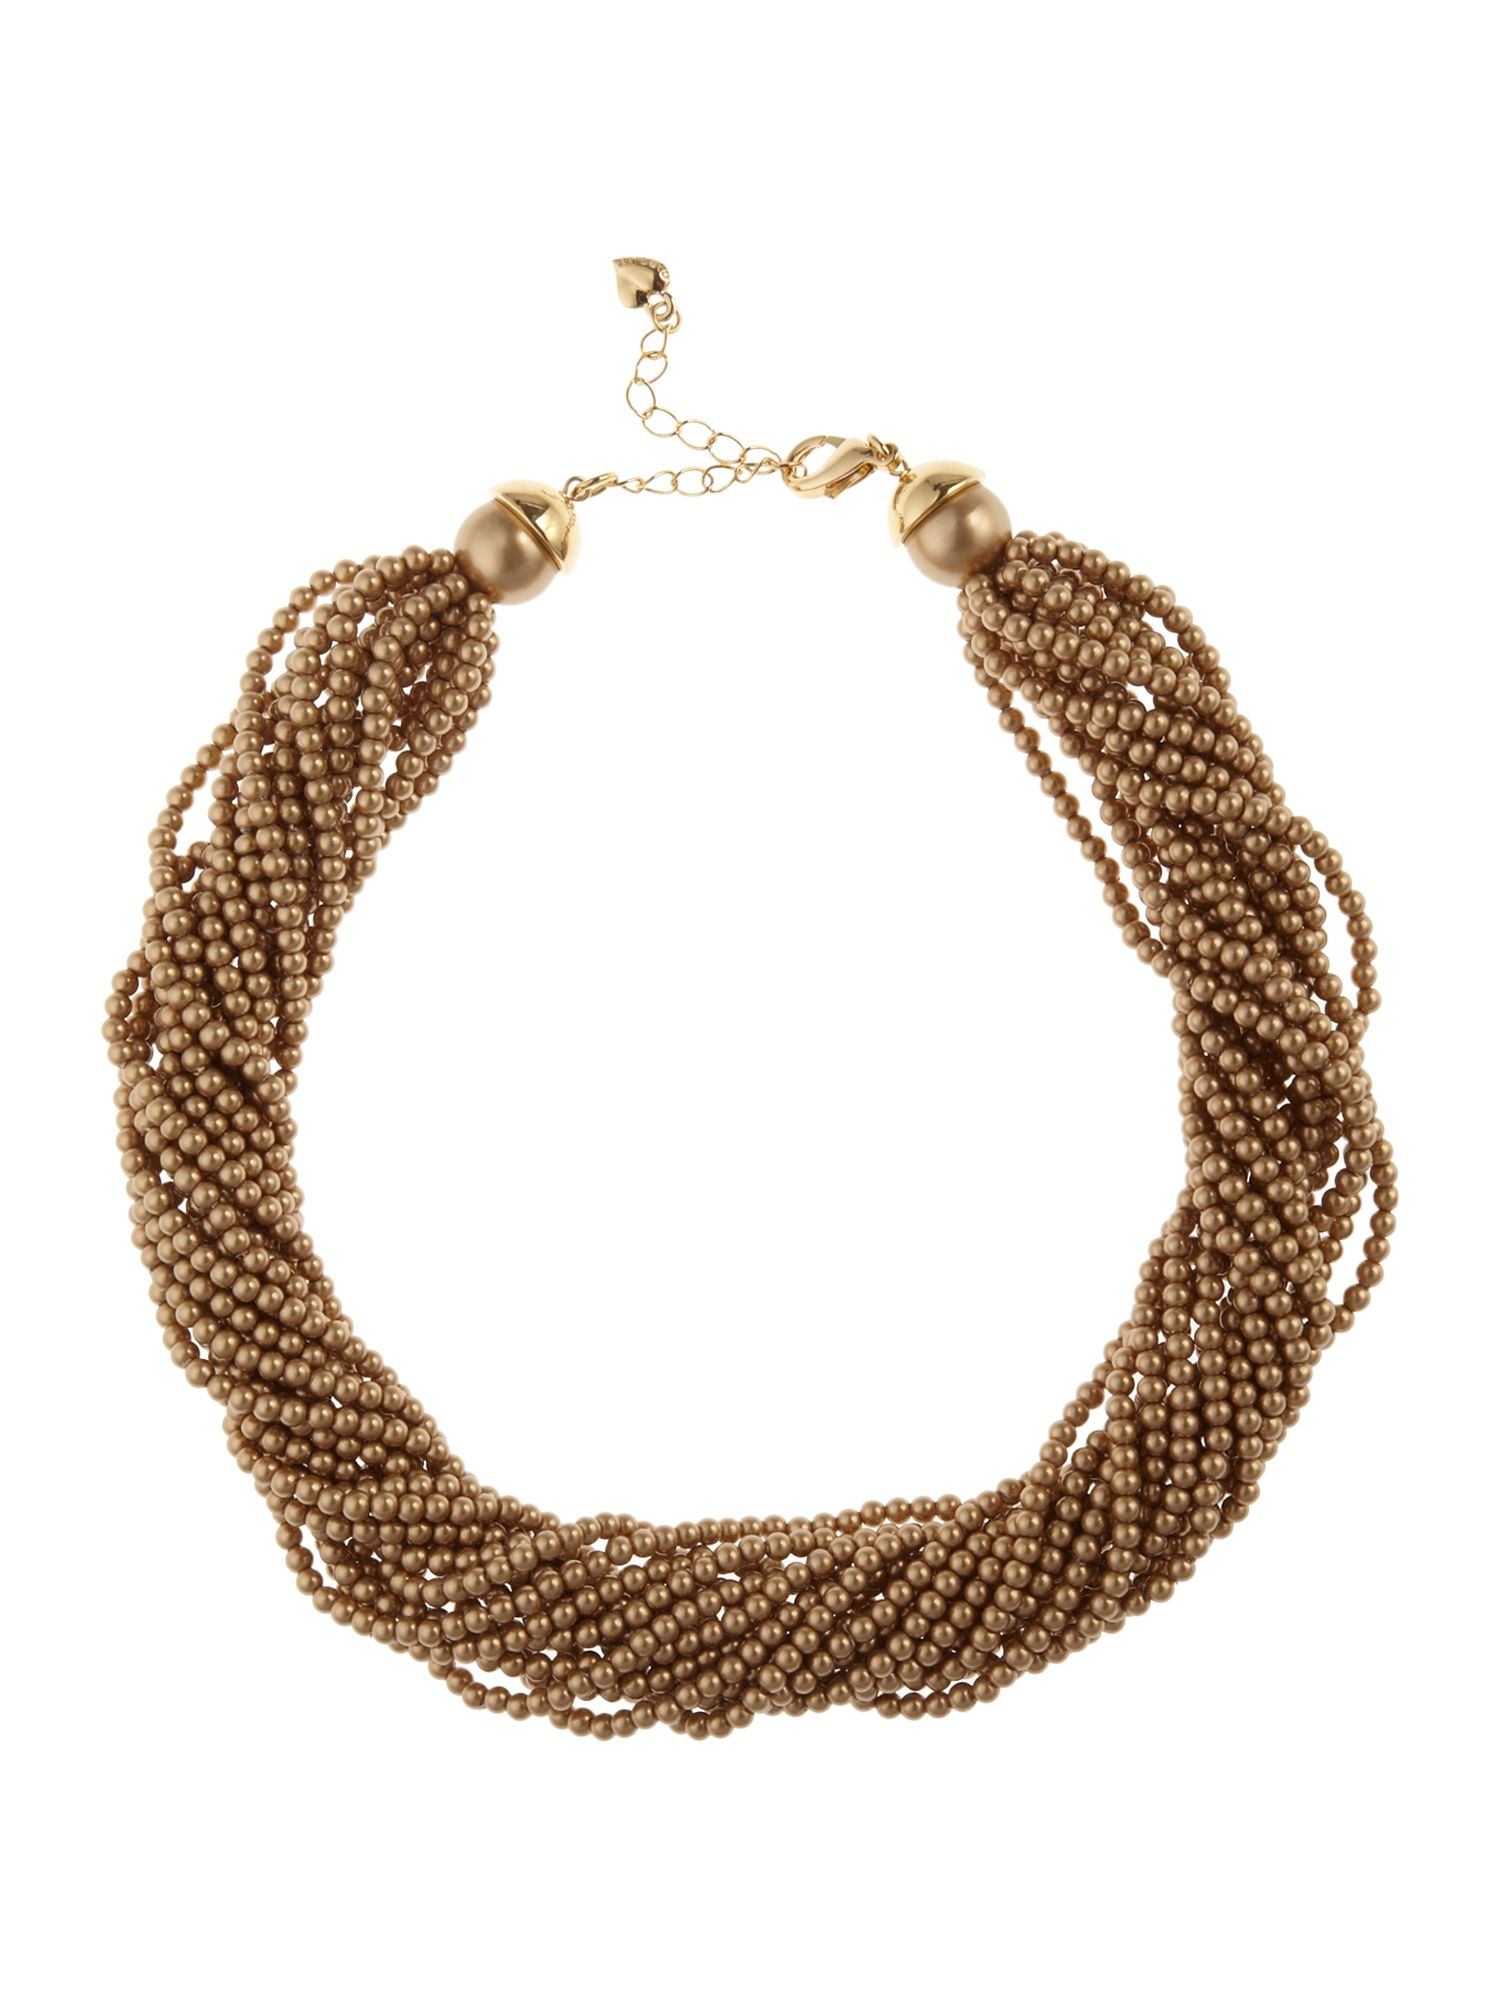 Carolee Style Icons Michelle Obama 16 16 strand necklace